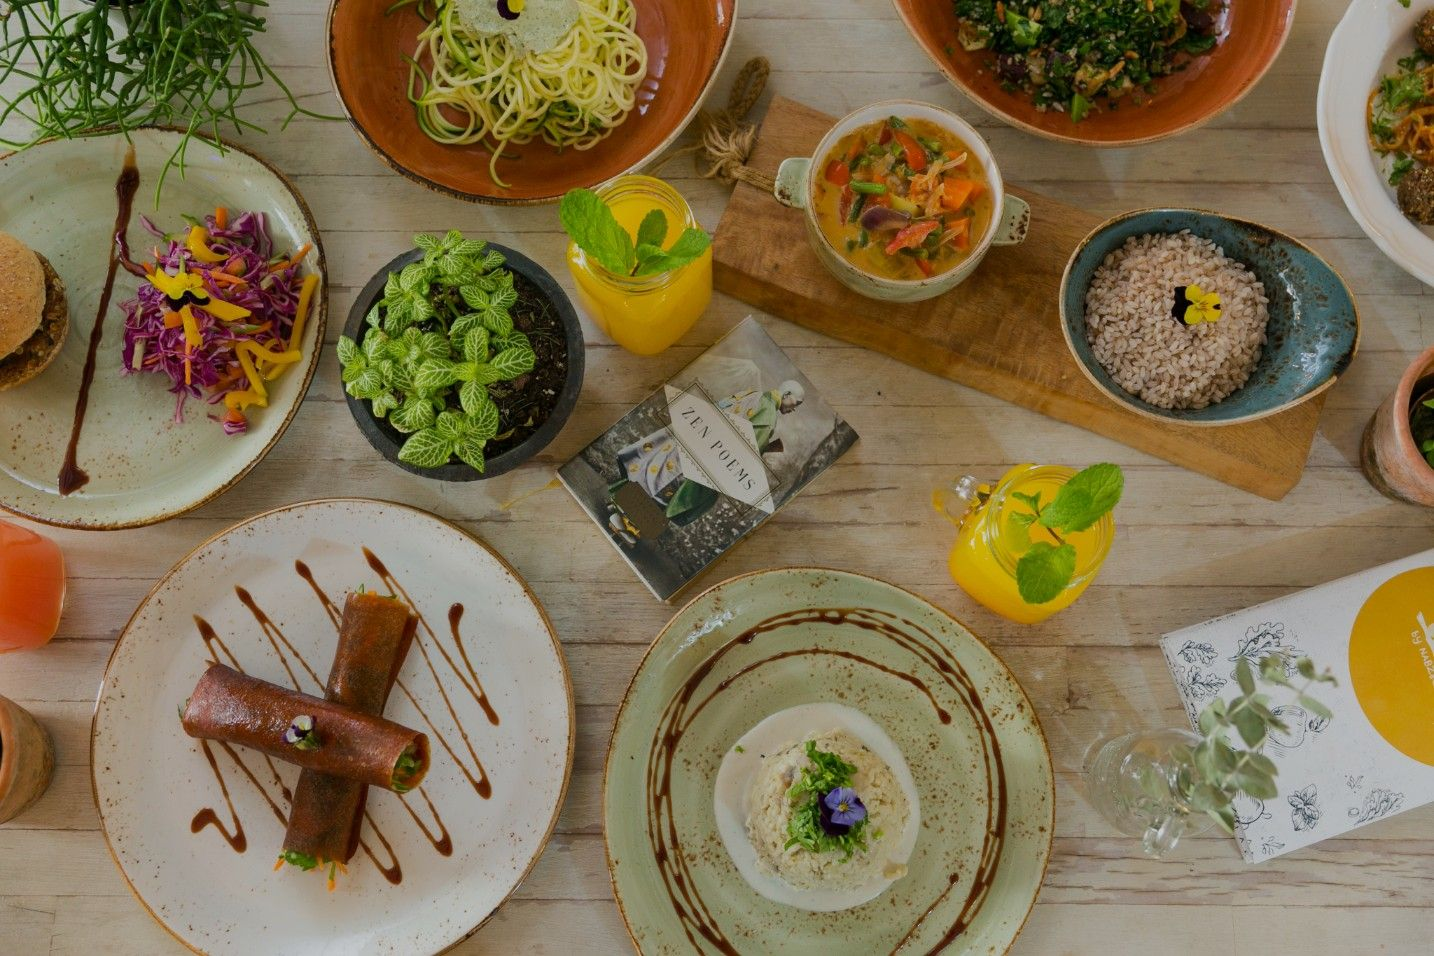 Urth By Nabz G Is A Vegan And Vegetarian Restaurant In Jumeirah Lake Towers Dubai Get Your Healthy Vegan And Vegetarian Food For Delivery